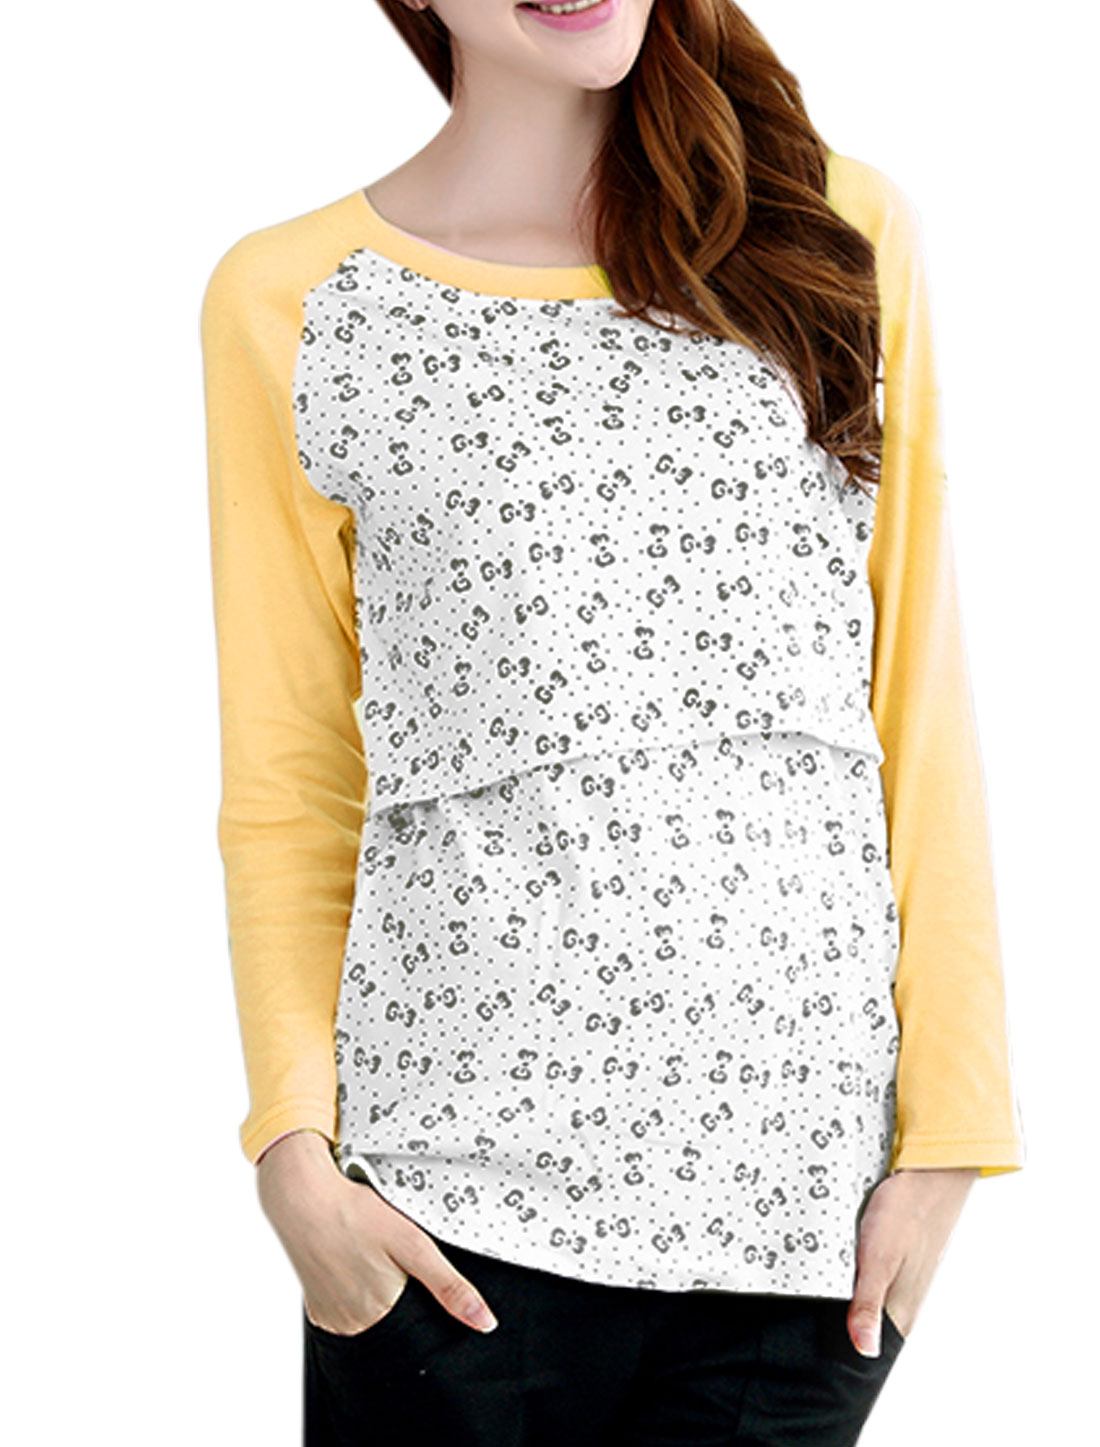 XK166 Motherhood Bowknot Pattern Long Raglan Sleeves Shirt Light Yellow White XXL/M (US 10)